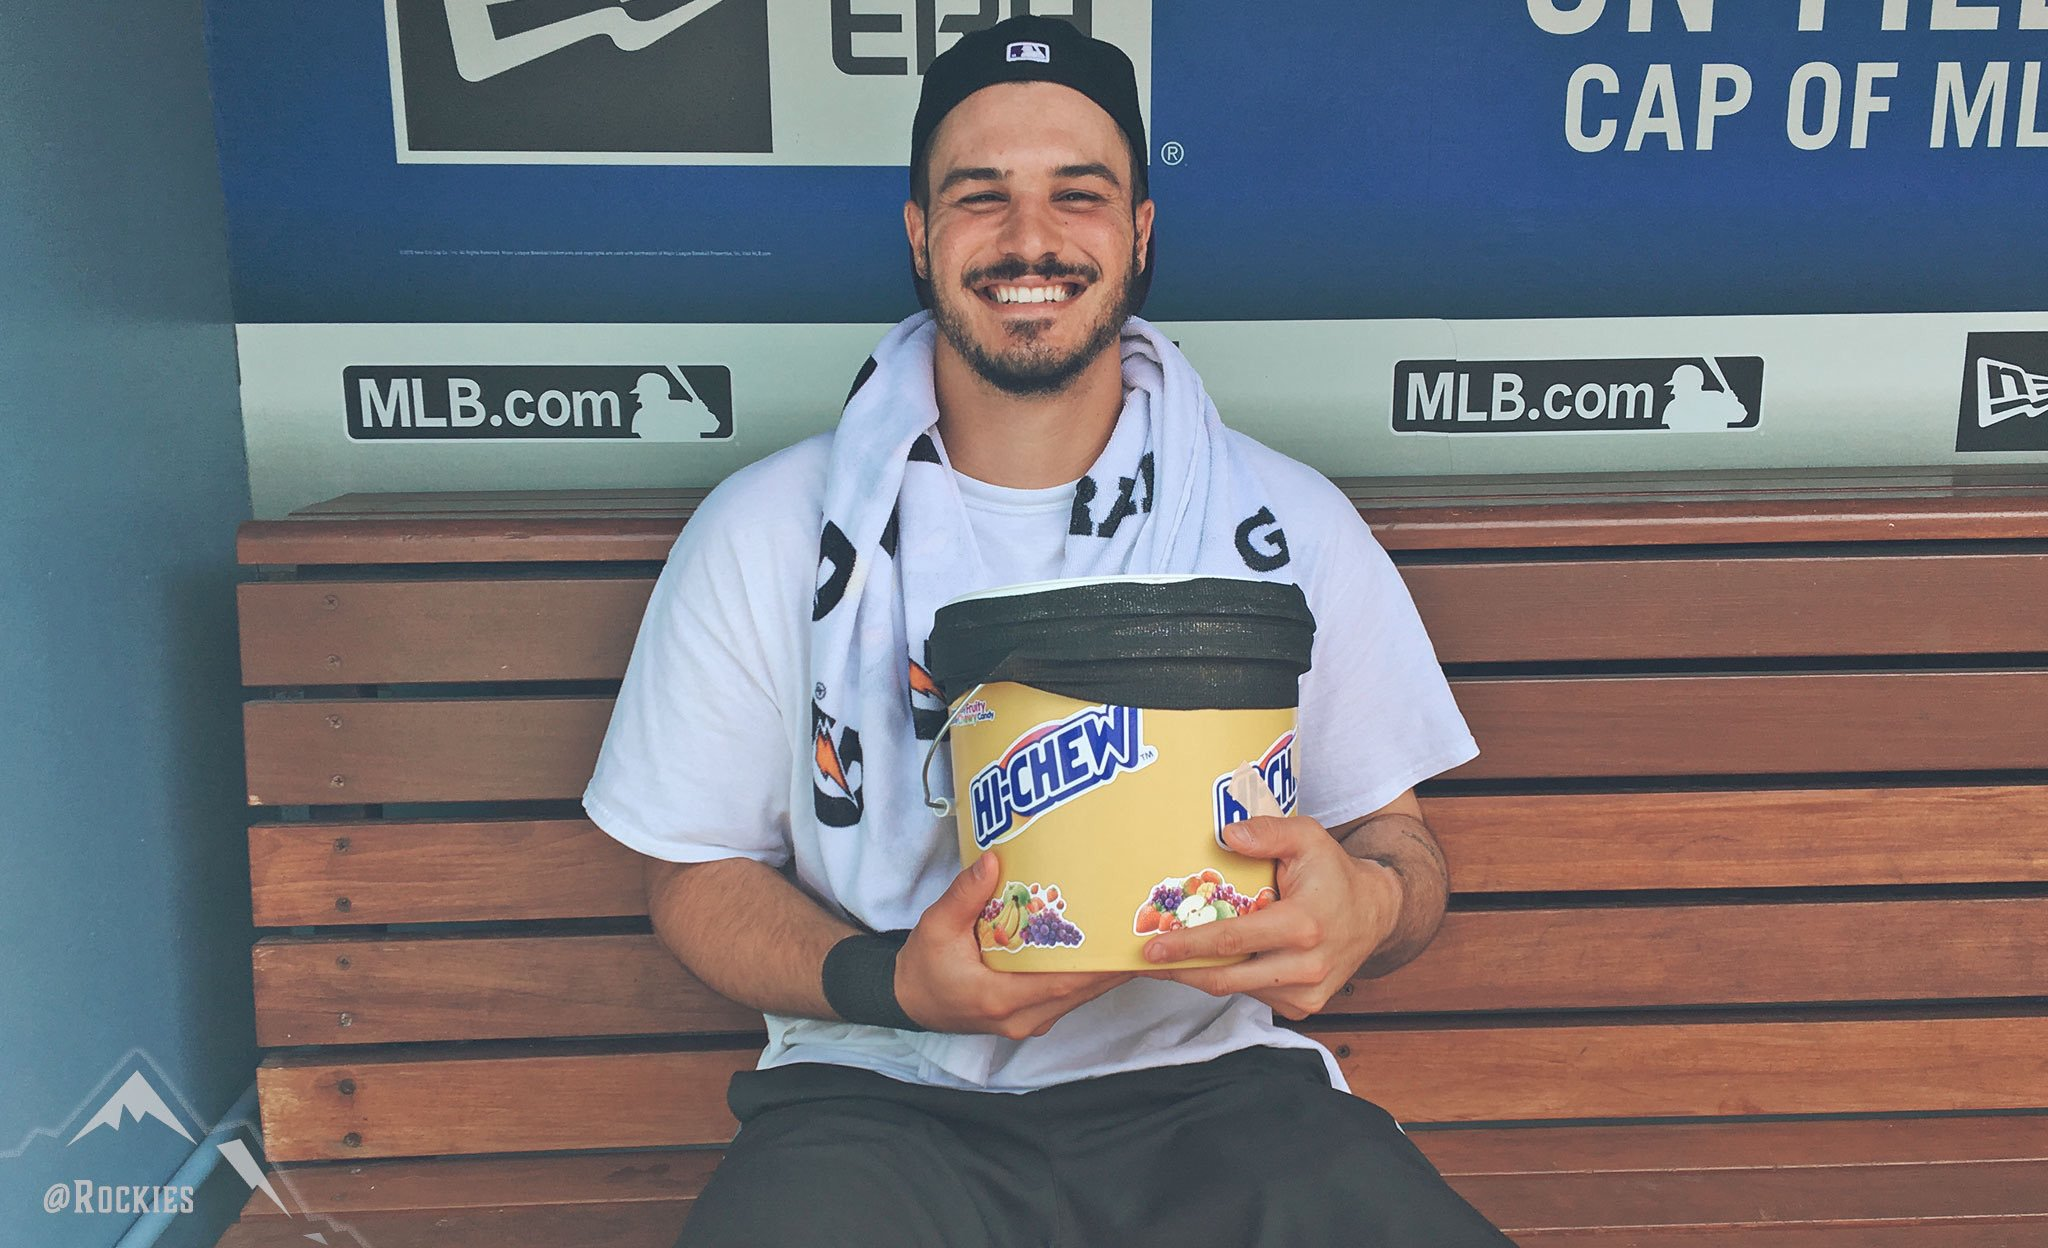 Nolan Arenado and a bucket of hi-chew